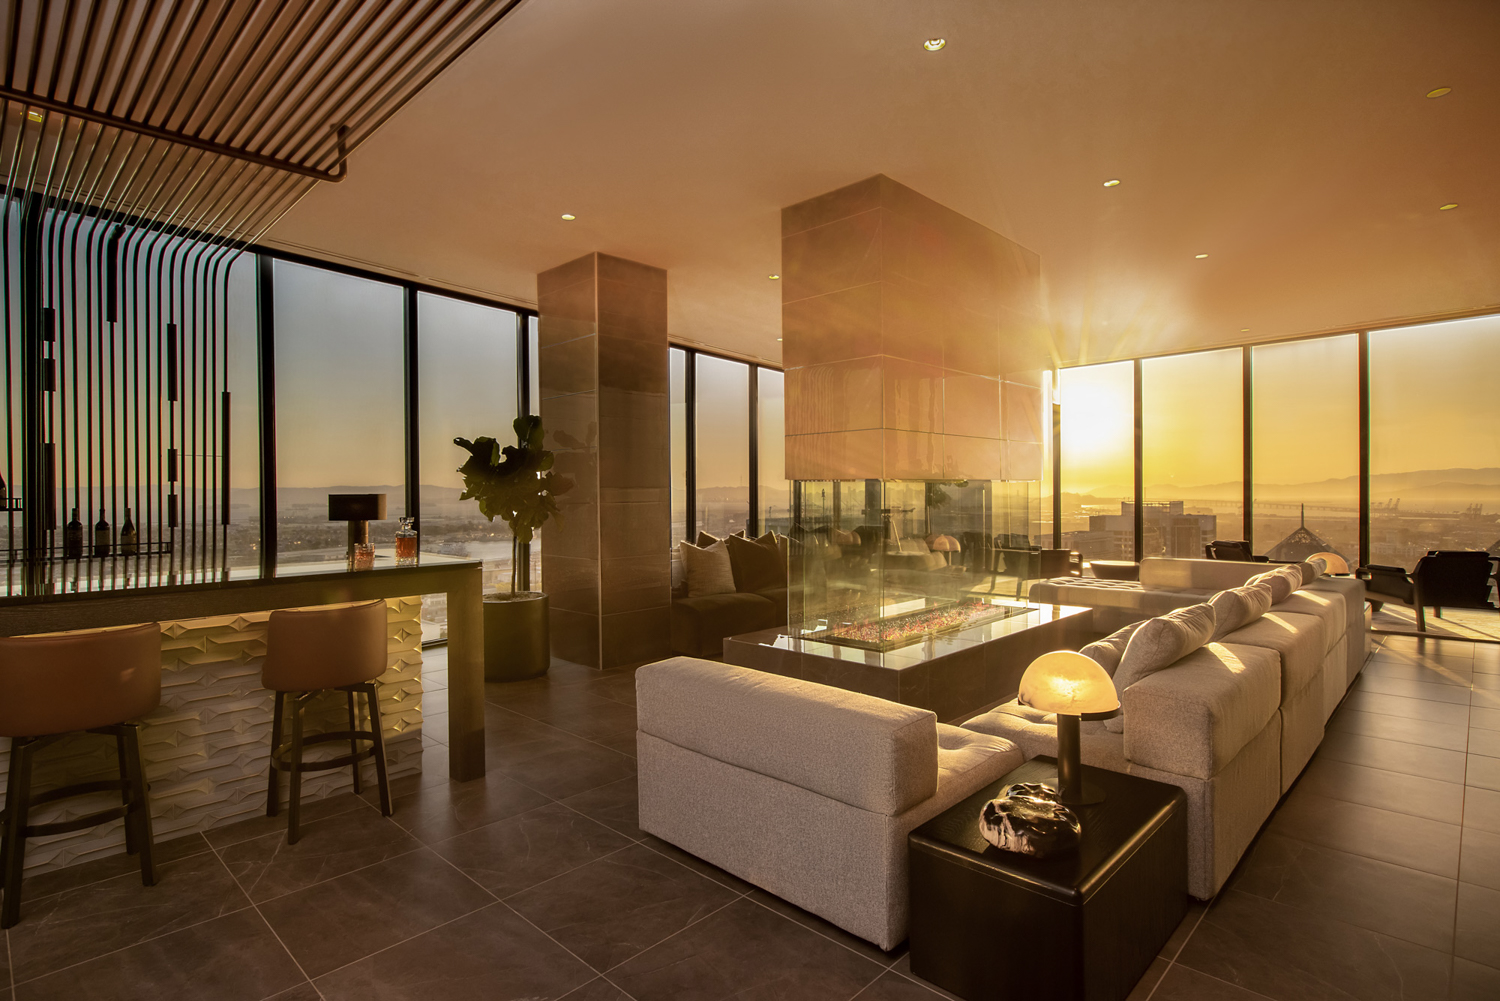 Sunset Lounge during golden hour in the Atlas at 385 14th Street, architecture by SCB